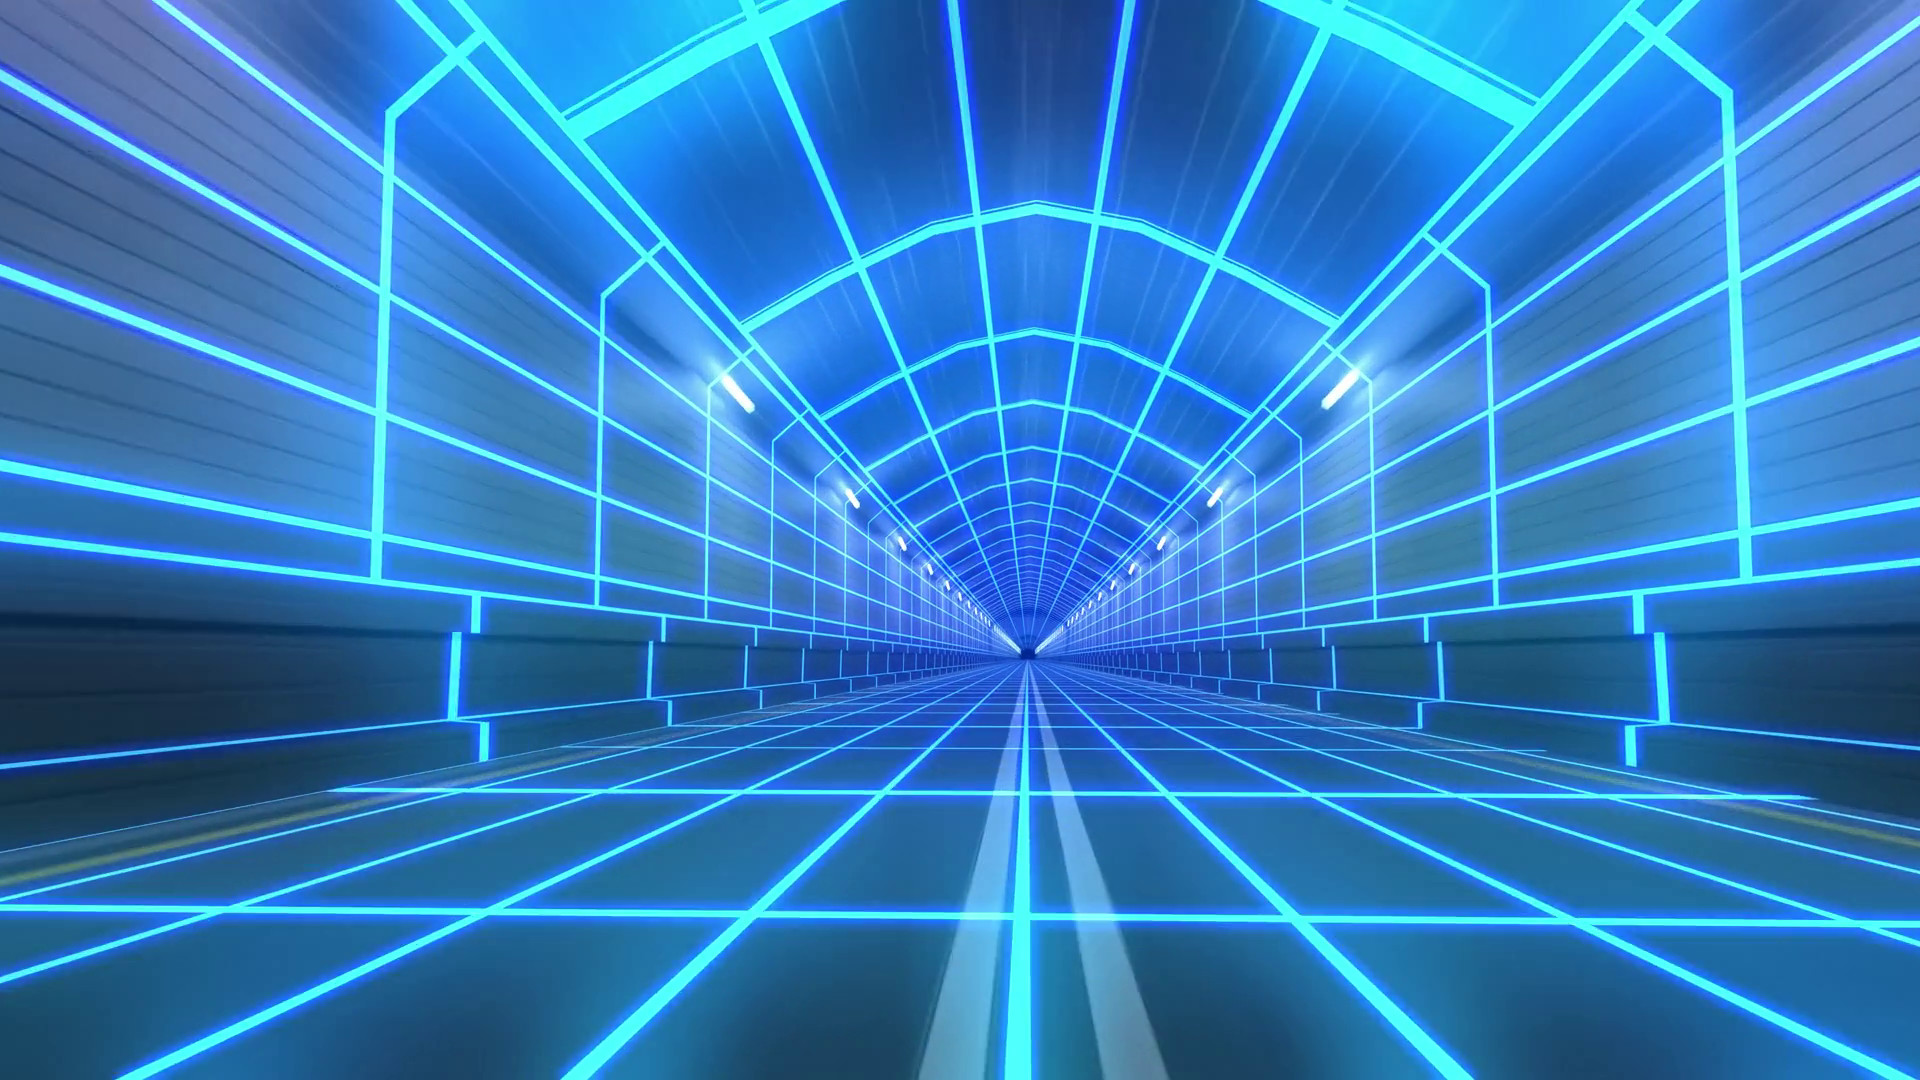 1920x1080 Loop tunnel 80s retro tron future wireframe arcade road tube subway neon  glow 4k Motion Background - VideoBlocks